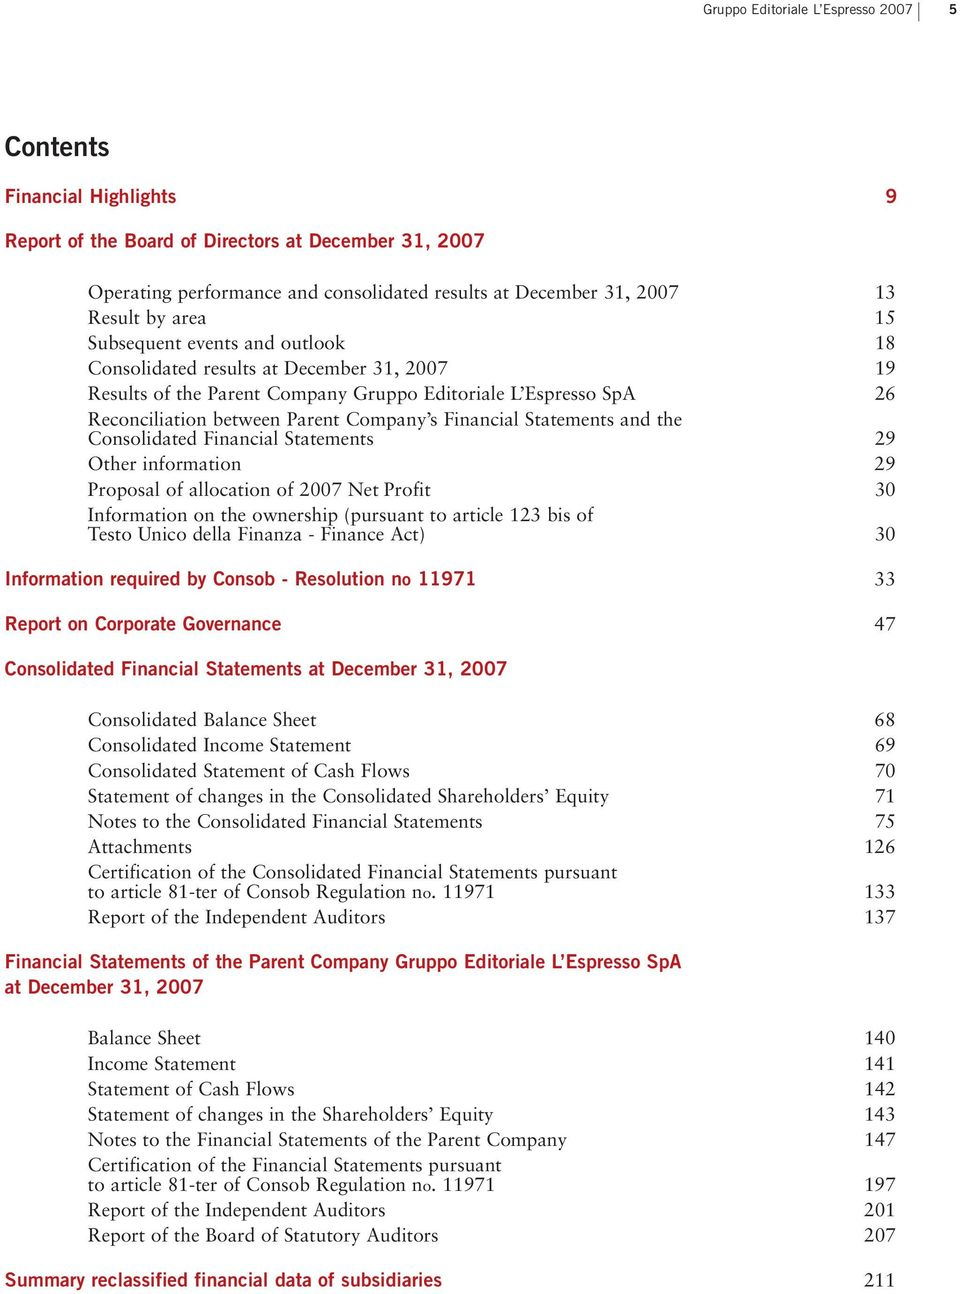 Financial Statements and the Consolidated Financial Statements 29 Other information 29 Proposal of allocation of 2007 Net Profit 30 Information on the ownership (pursuant to article 123 bis of Testo